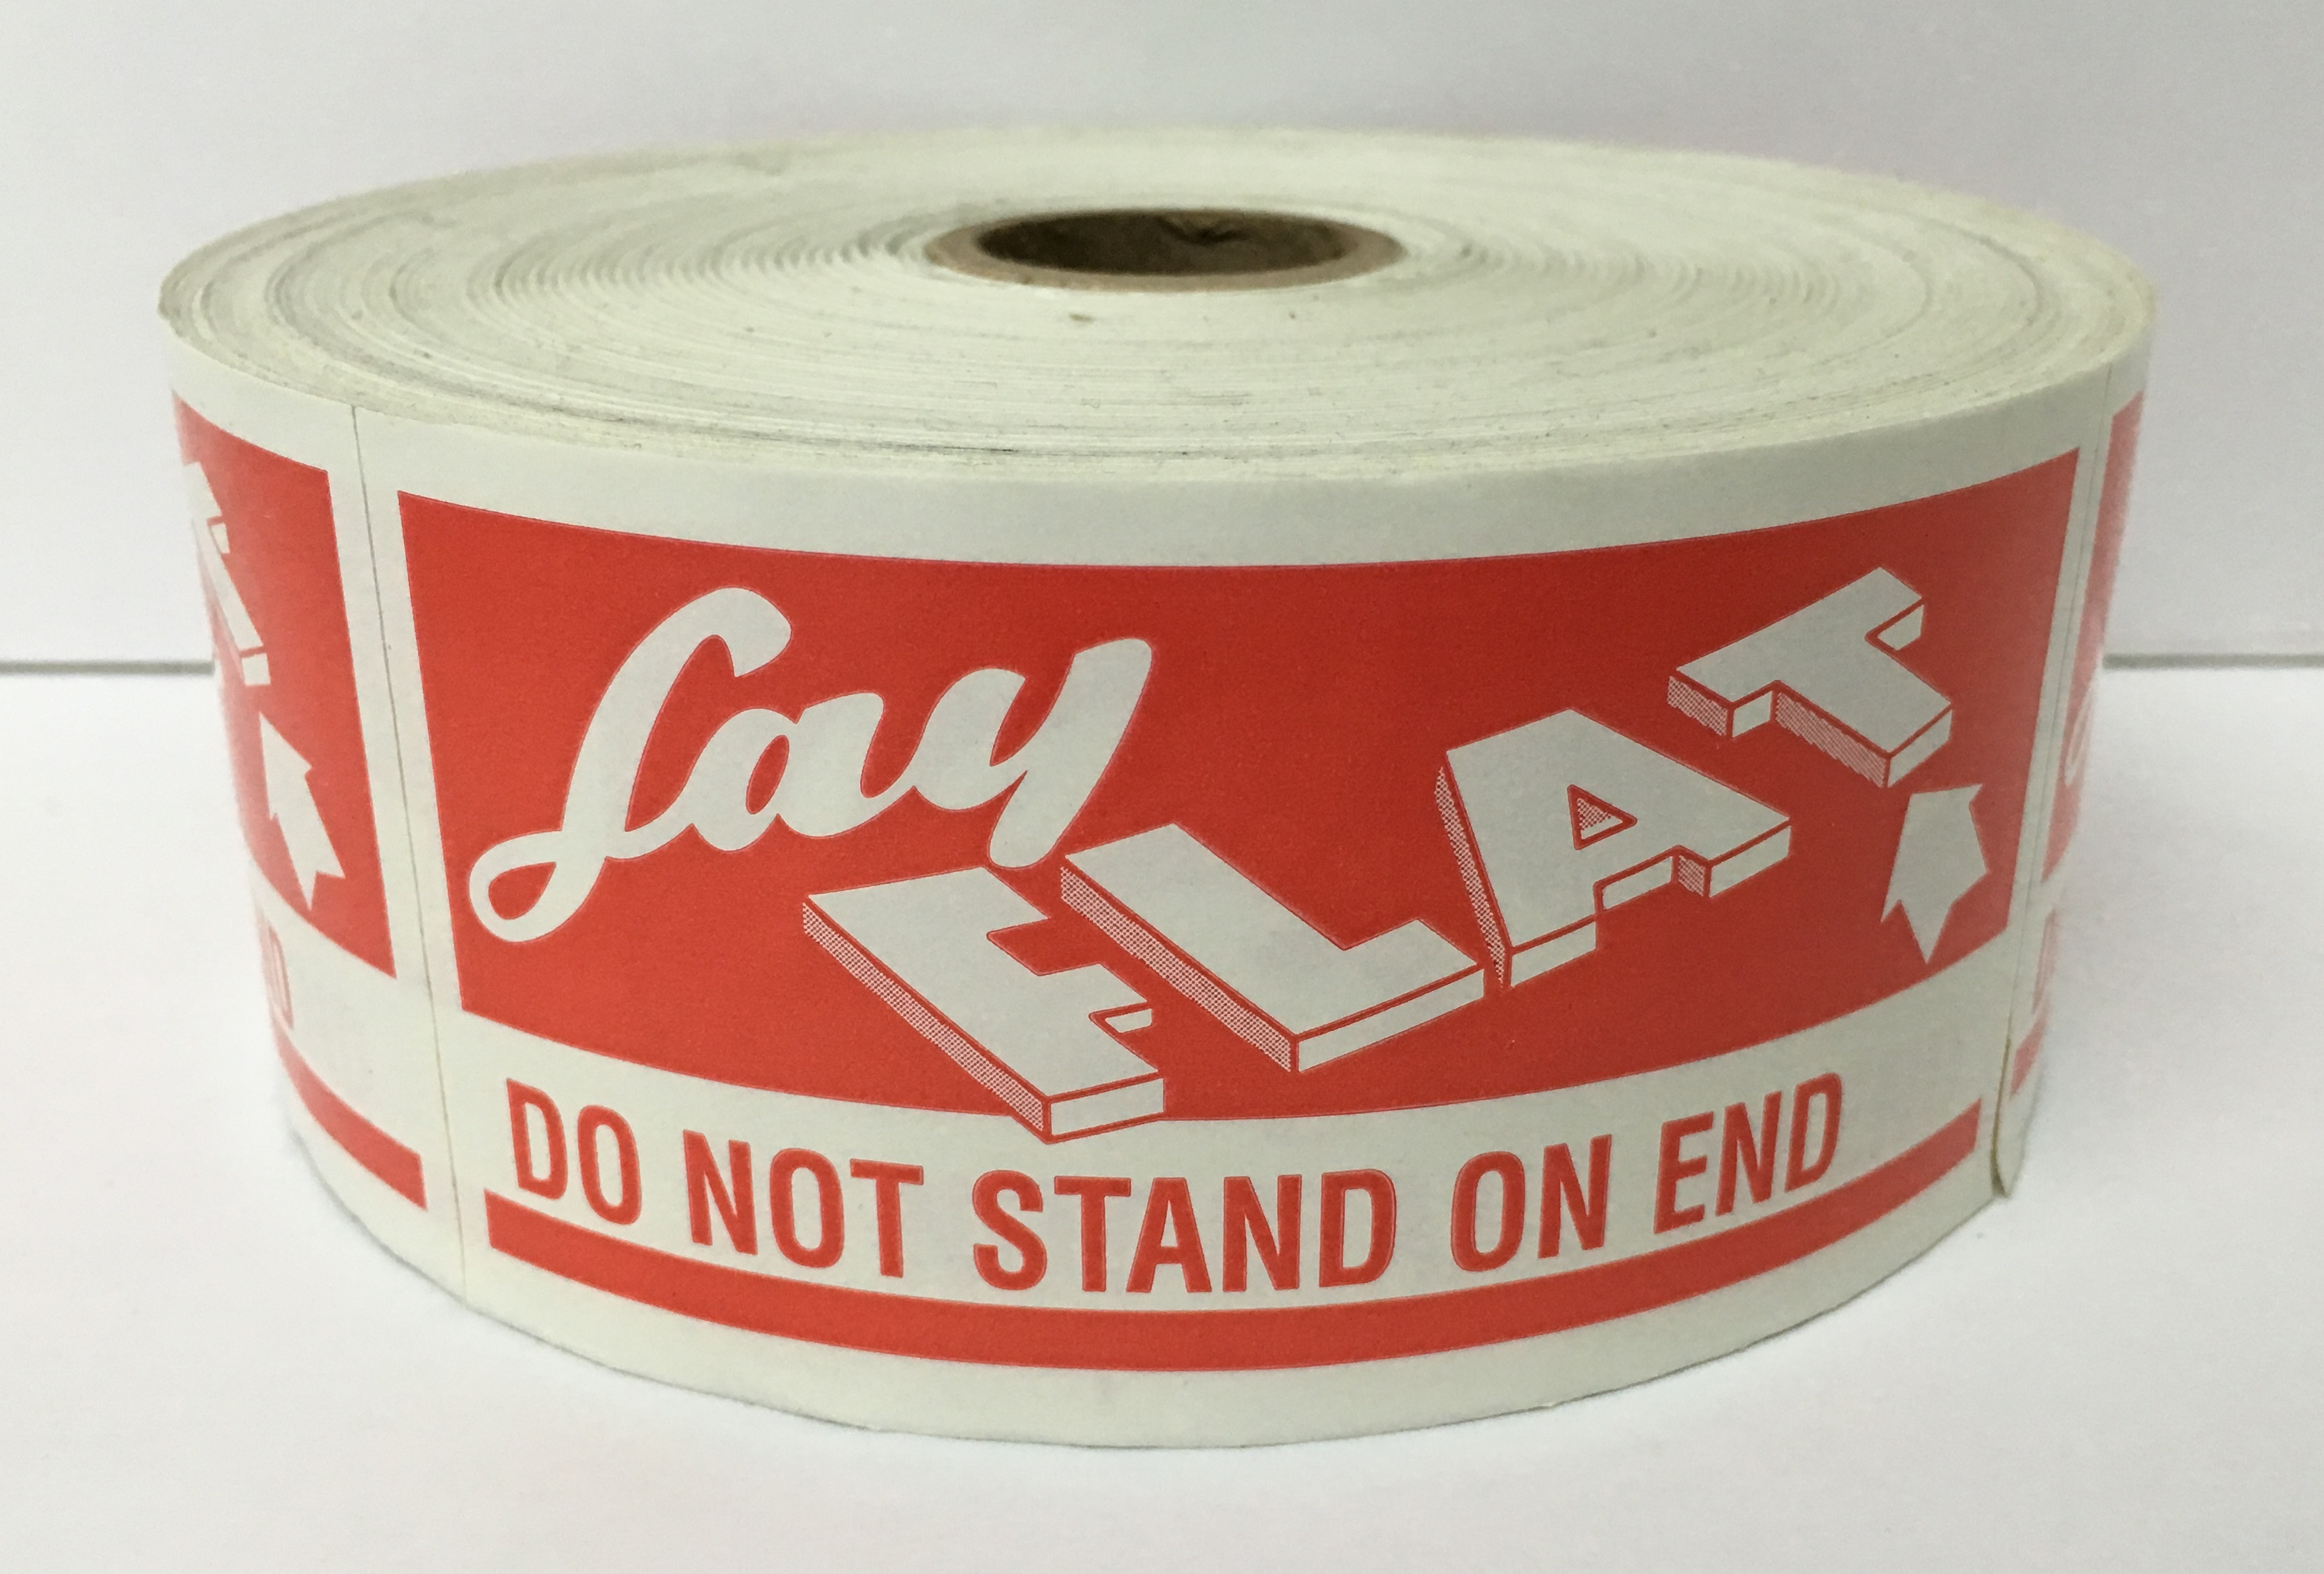 "LAY FLAT / DO NOT STAND ON END Labels - 2"" x 4"", 500/Roll"